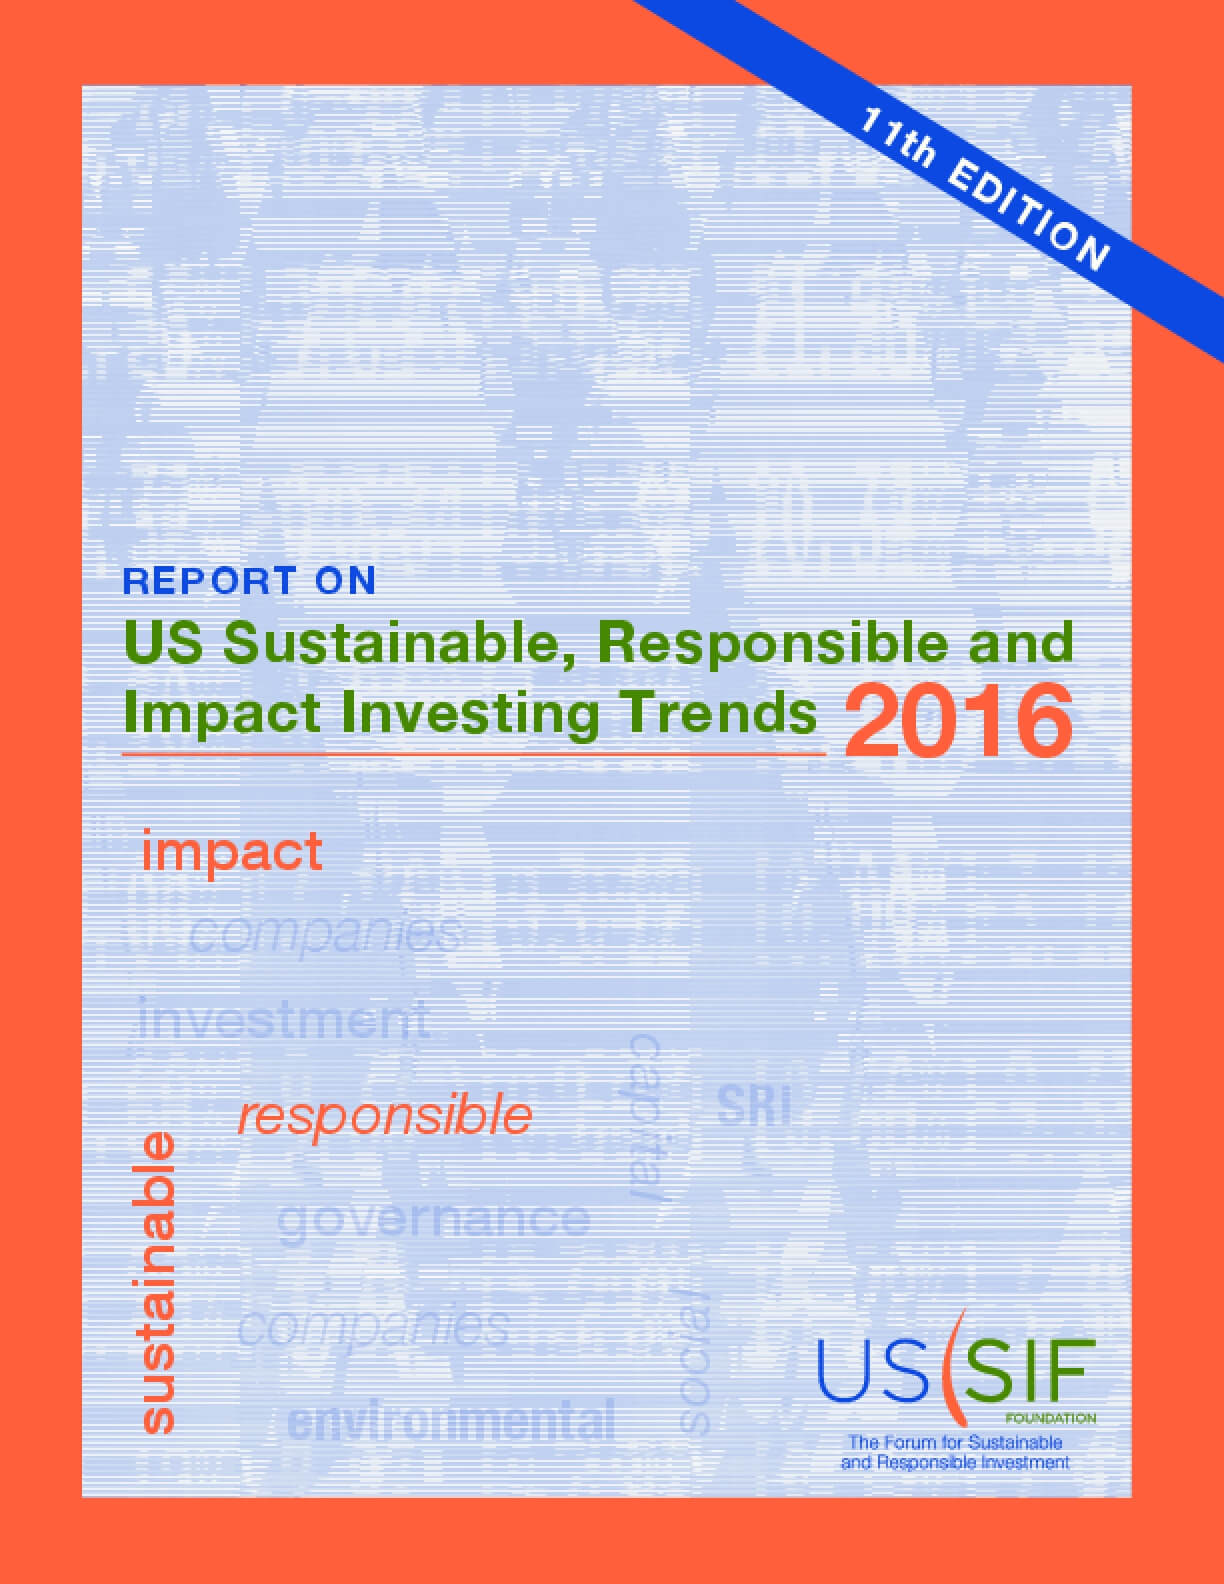 US Sustainable, Responsible and Impact Investing Trends 2016